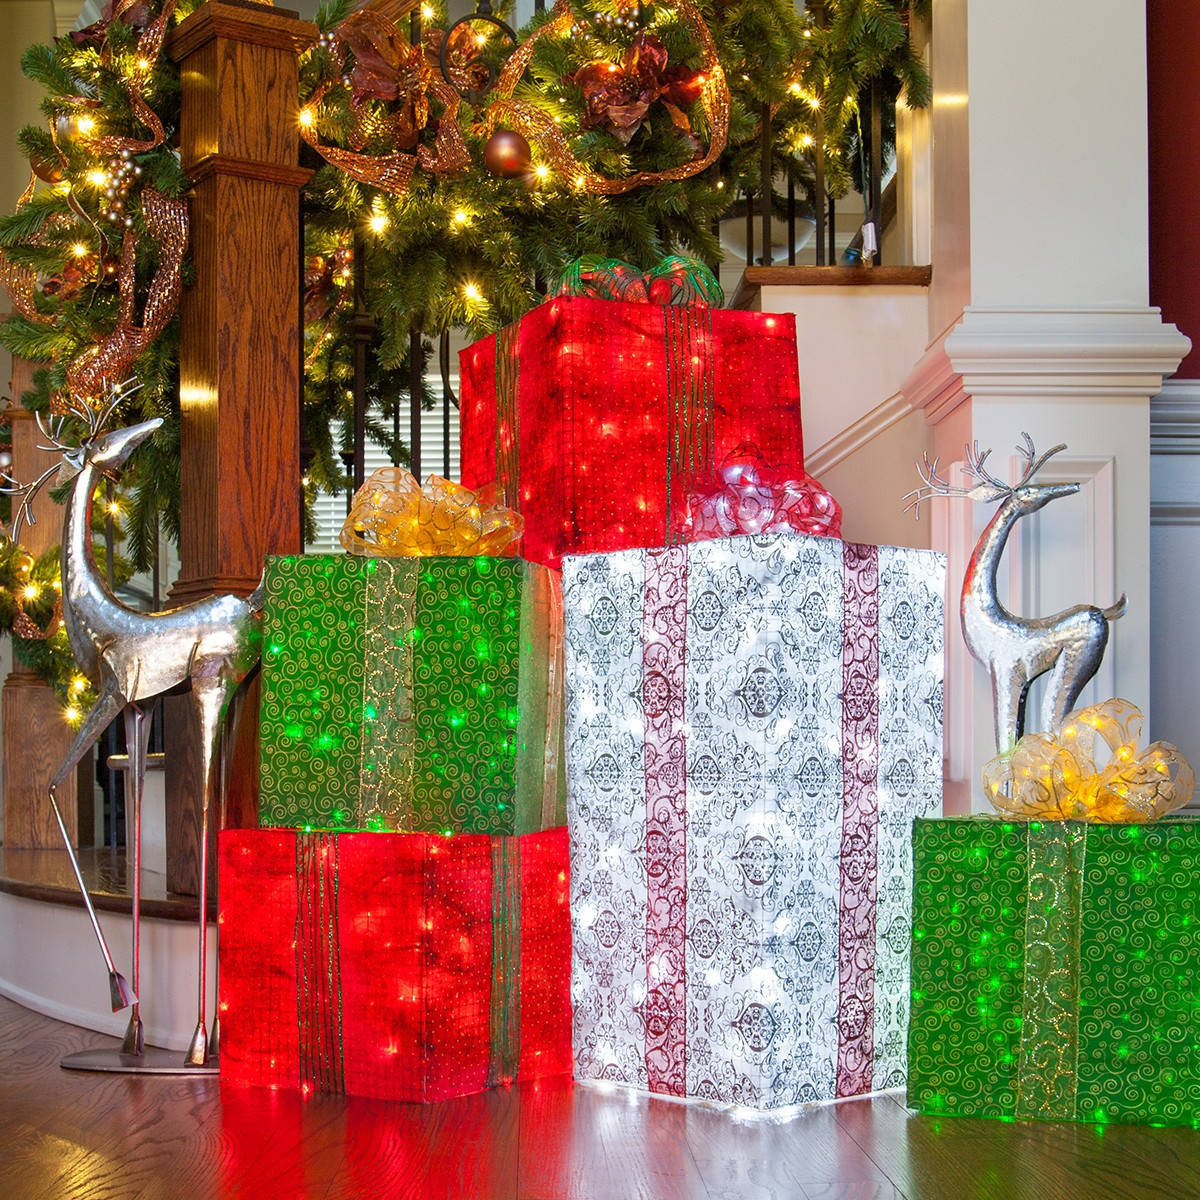 Best ideas about DIY Christmas Lights . Save or Pin DIY Christmas Decorations 4 Lighted Gift Boxes Now.